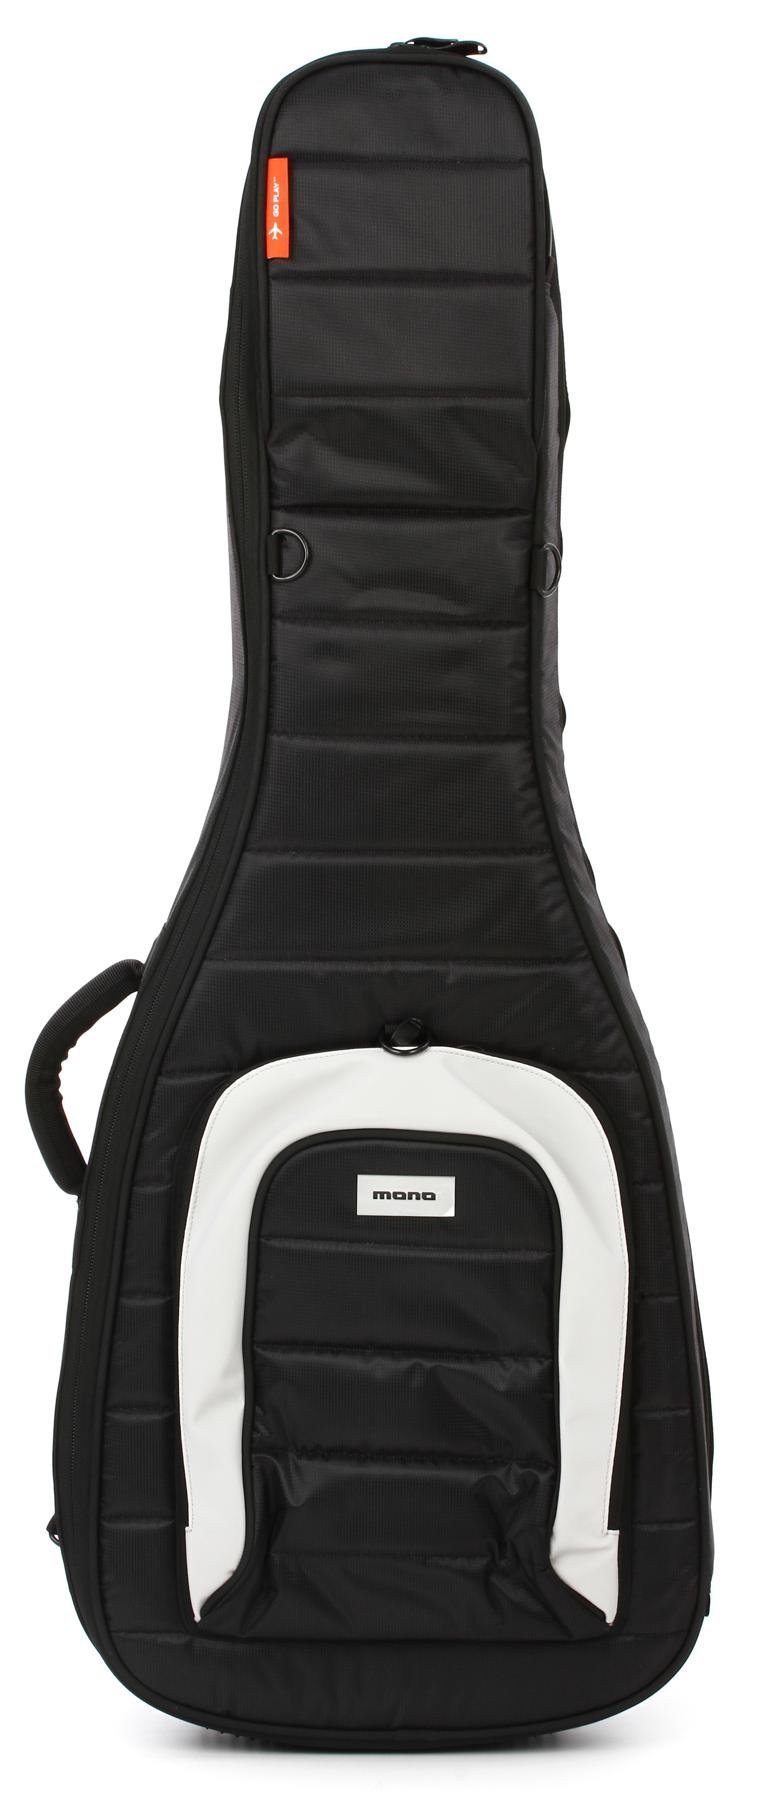 Mono Classic Dual Electric Guitar Case Black Sweetwater